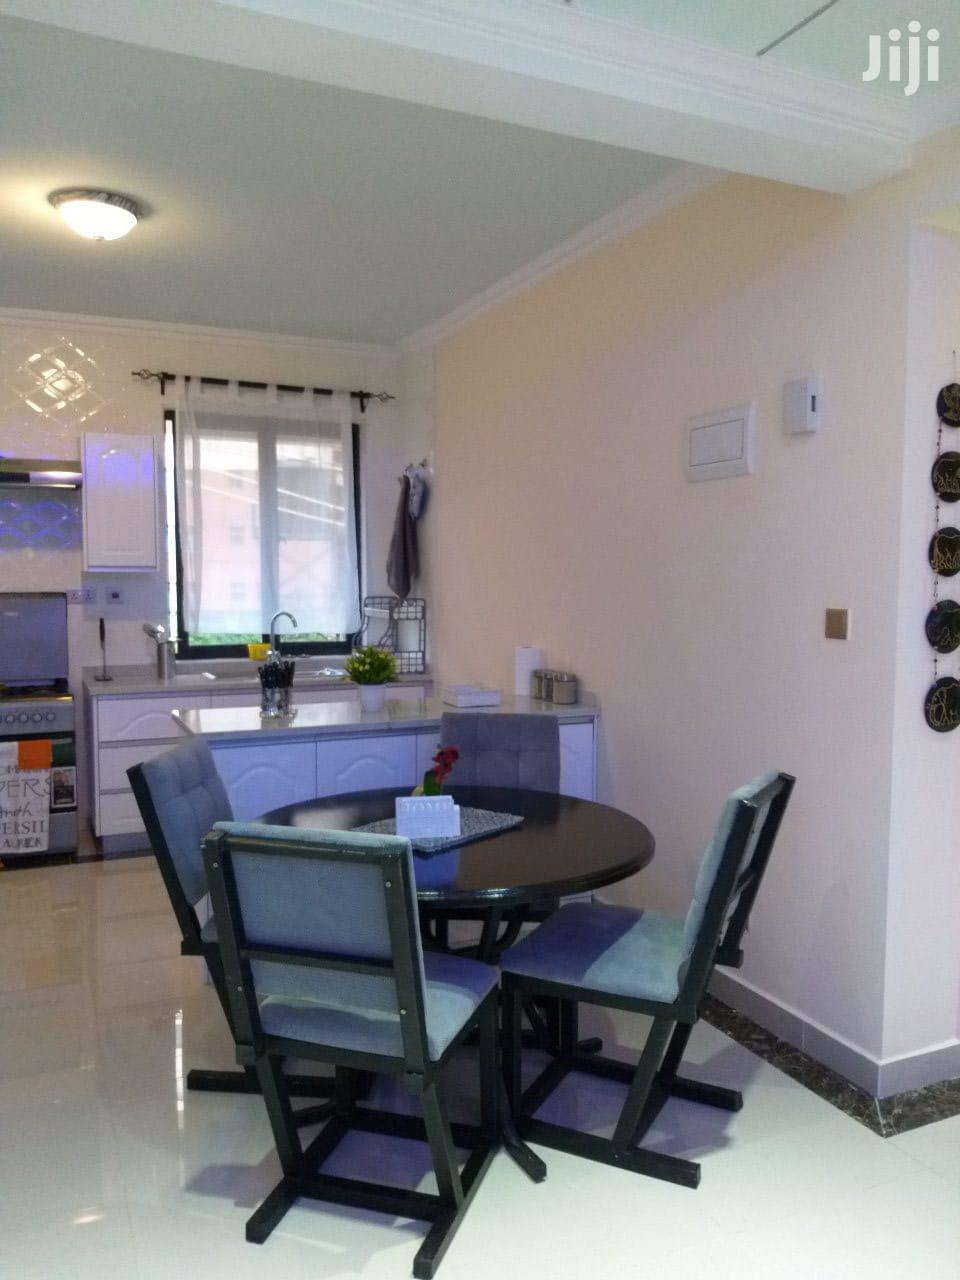 To Let 2bdrm Fully Furnished Apartment at Kilimani Nairobi Kenya | Houses & Apartments For Rent for sale in Kilimani, Nairobi, Kenya